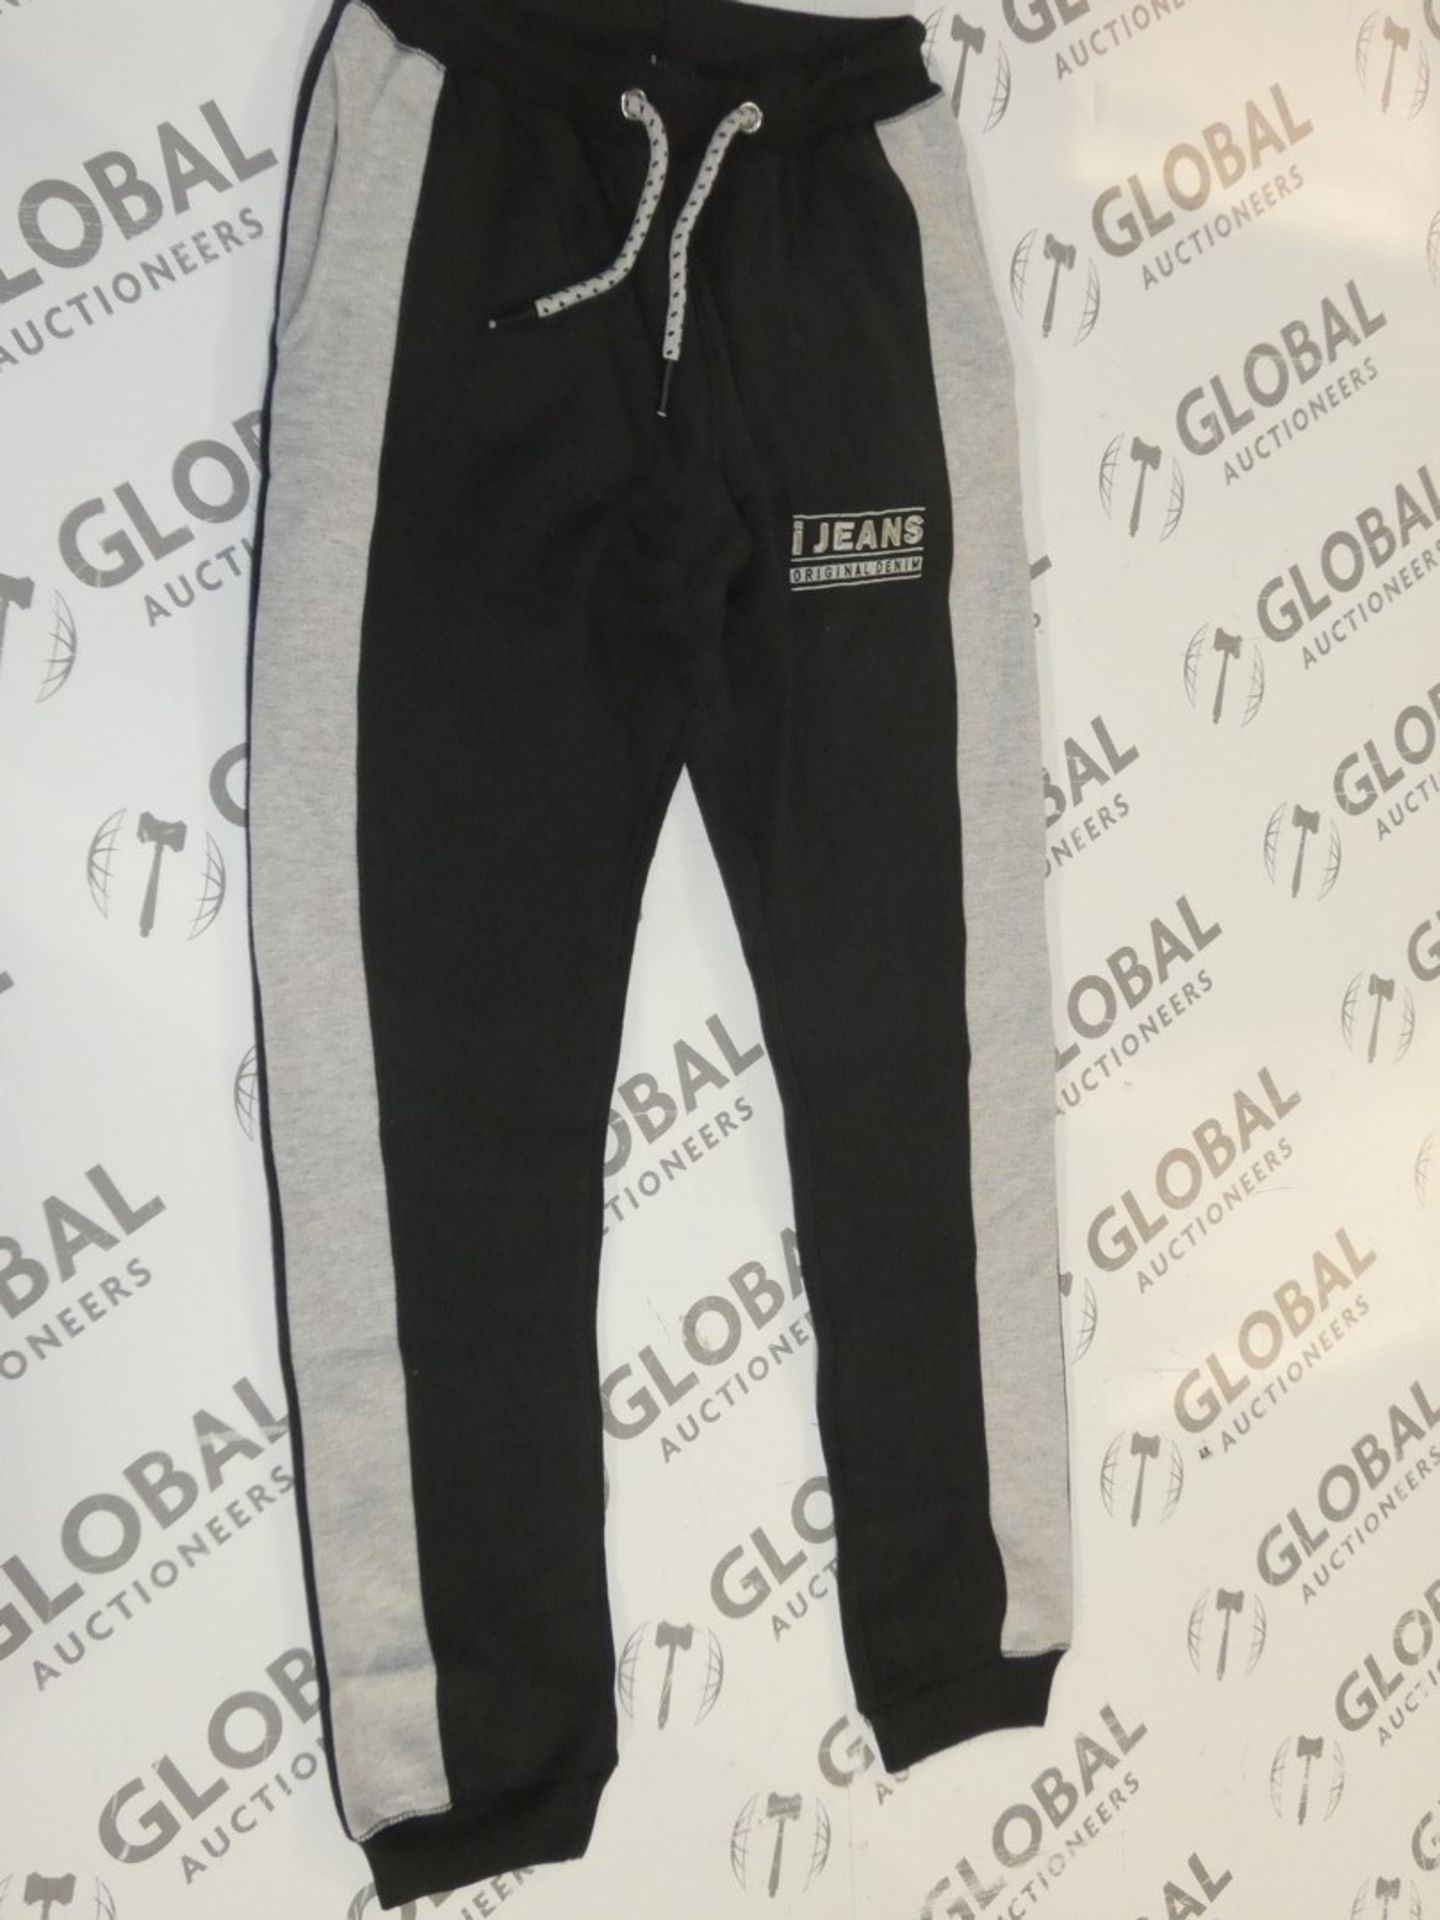 Lot 168 - Assorted Brand New Pairs Of Ijeans Original Denim Black Lounging Pants In Assorted Sizes RRP £25 A